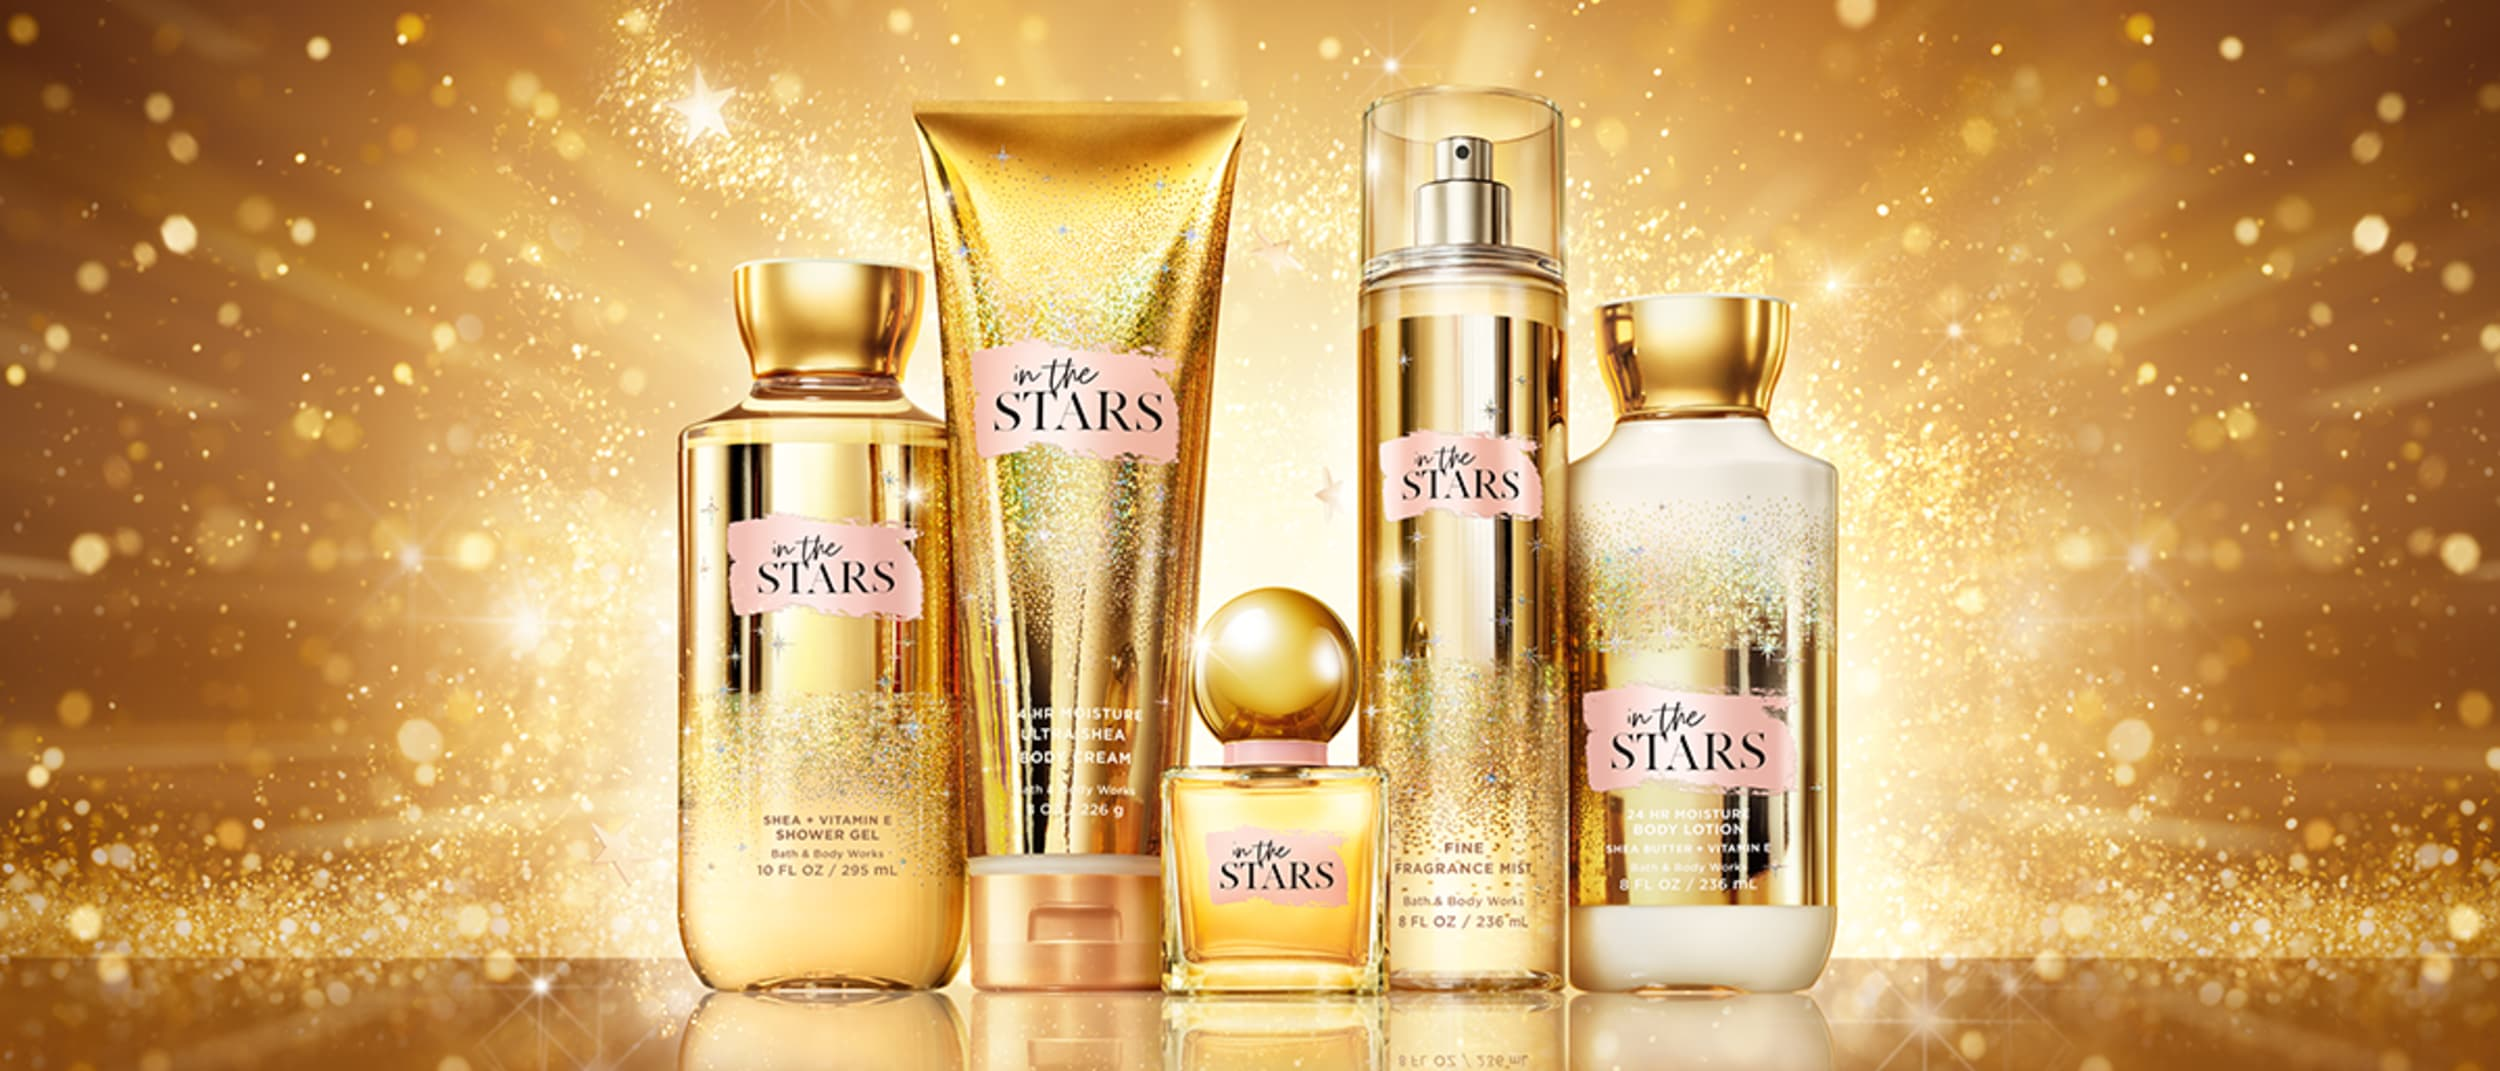 In The Stars, an exclusive fragrance at Bath & Body Works